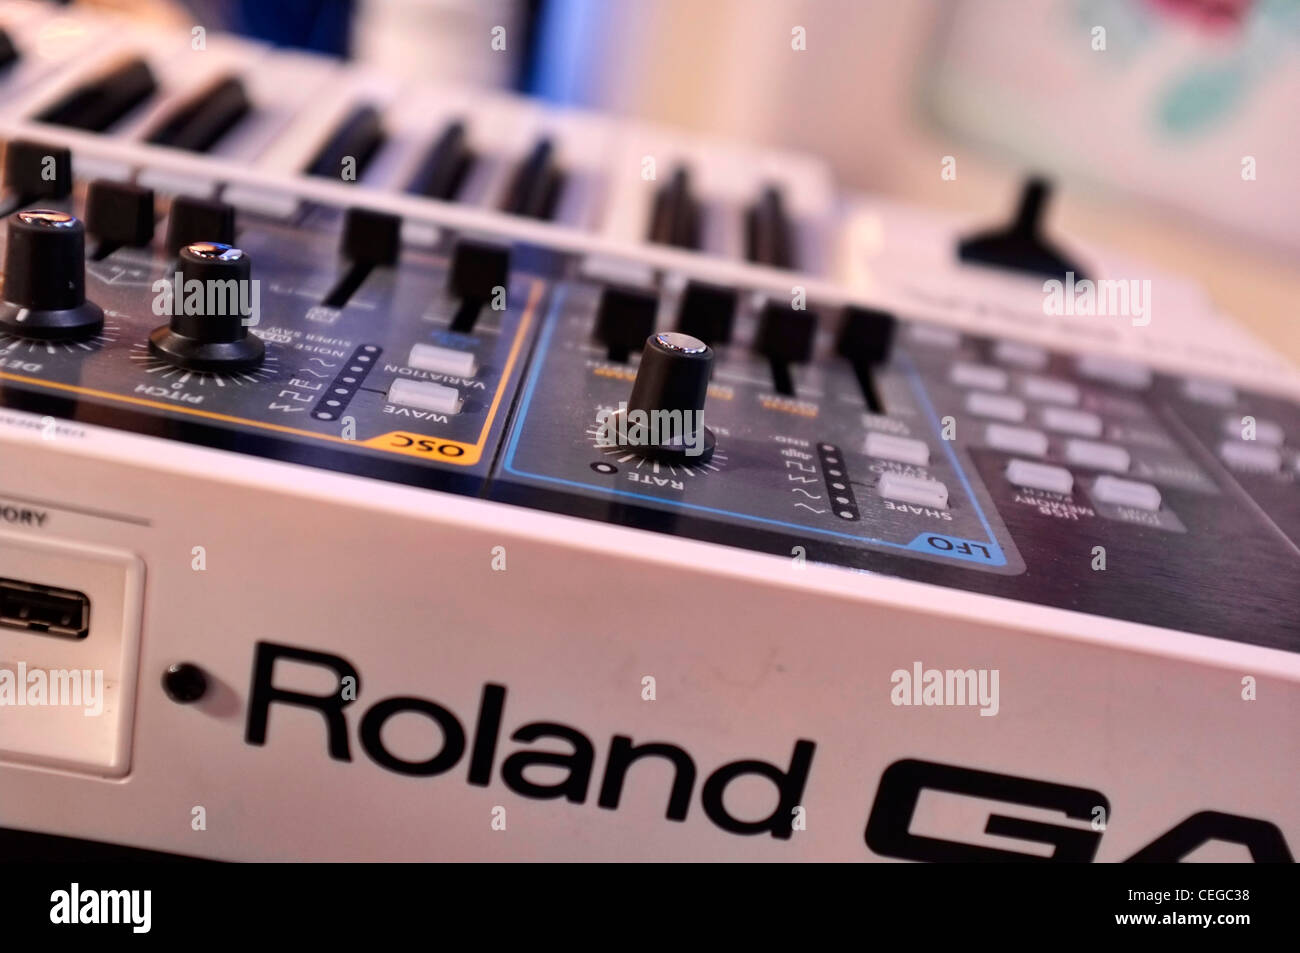 Close-up of a Roland Synthesizer - Stock Image